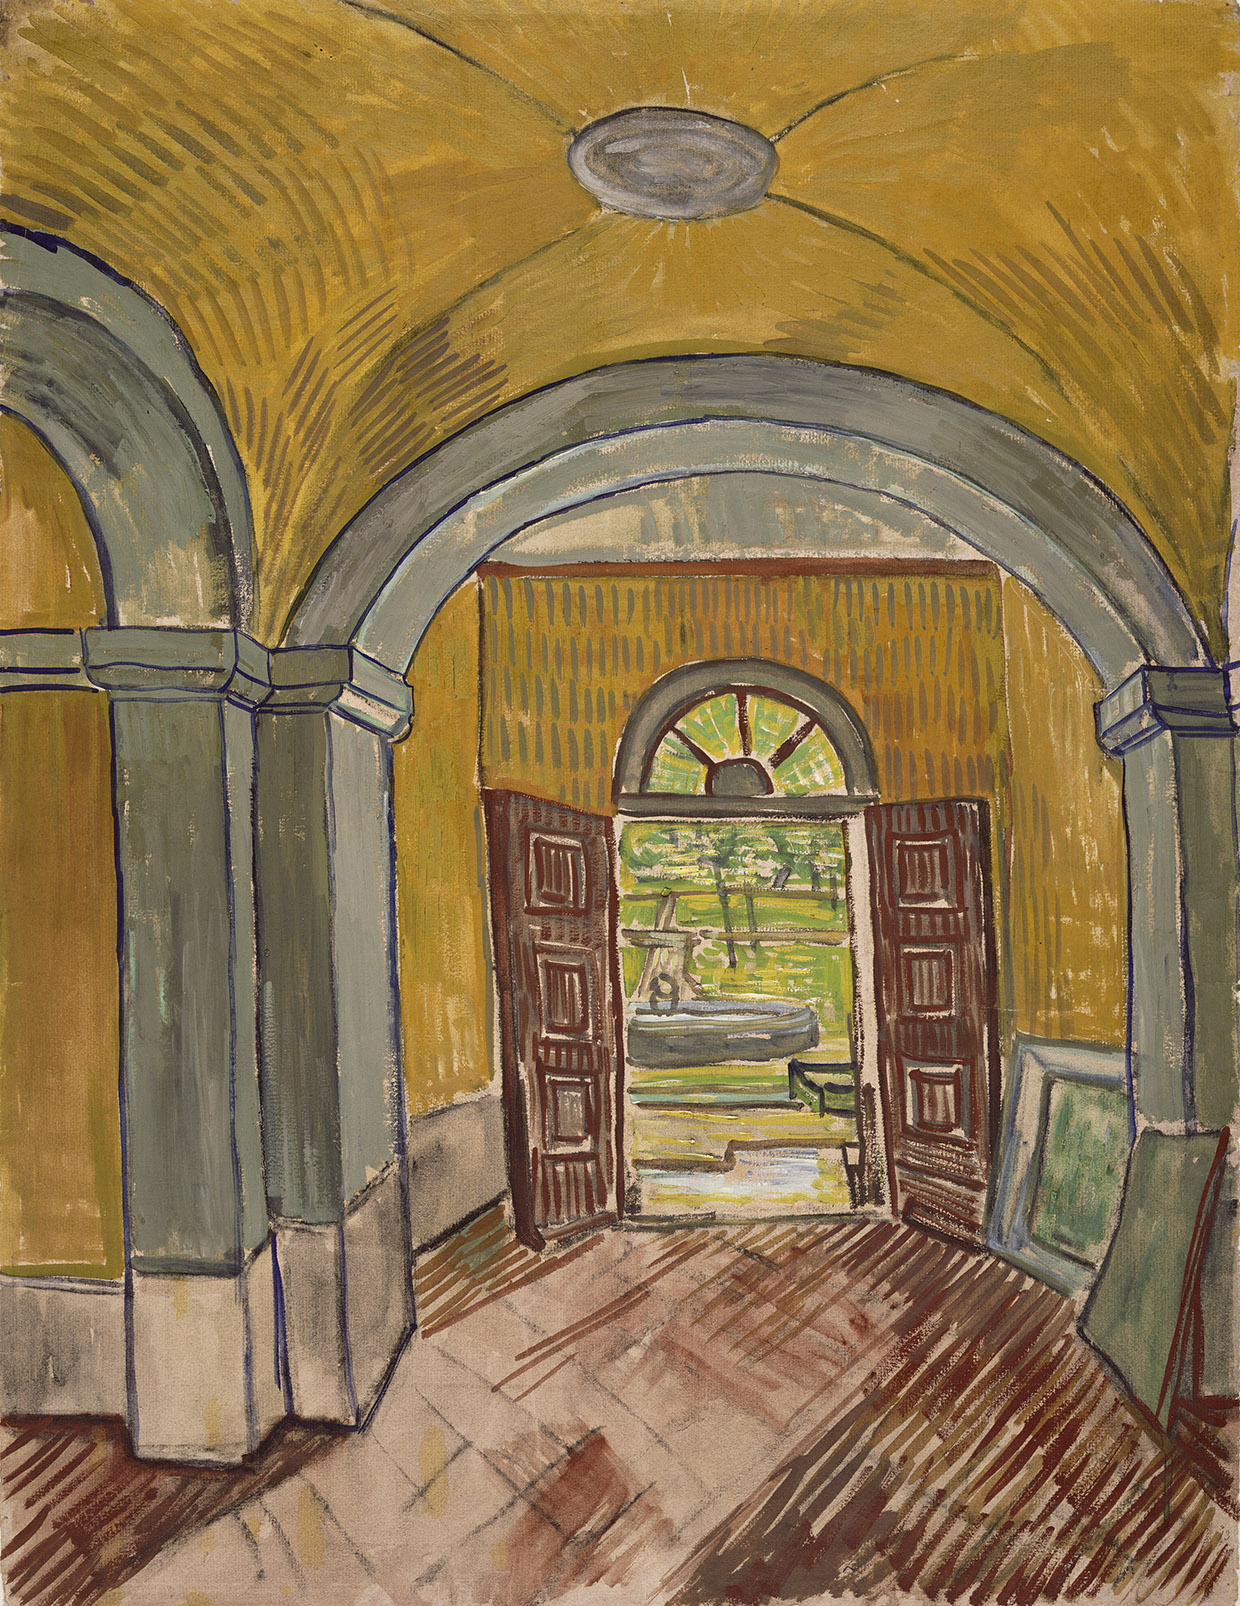 Les dessins de van gogh influences et innovations for De slaapkamer vincent van gogh